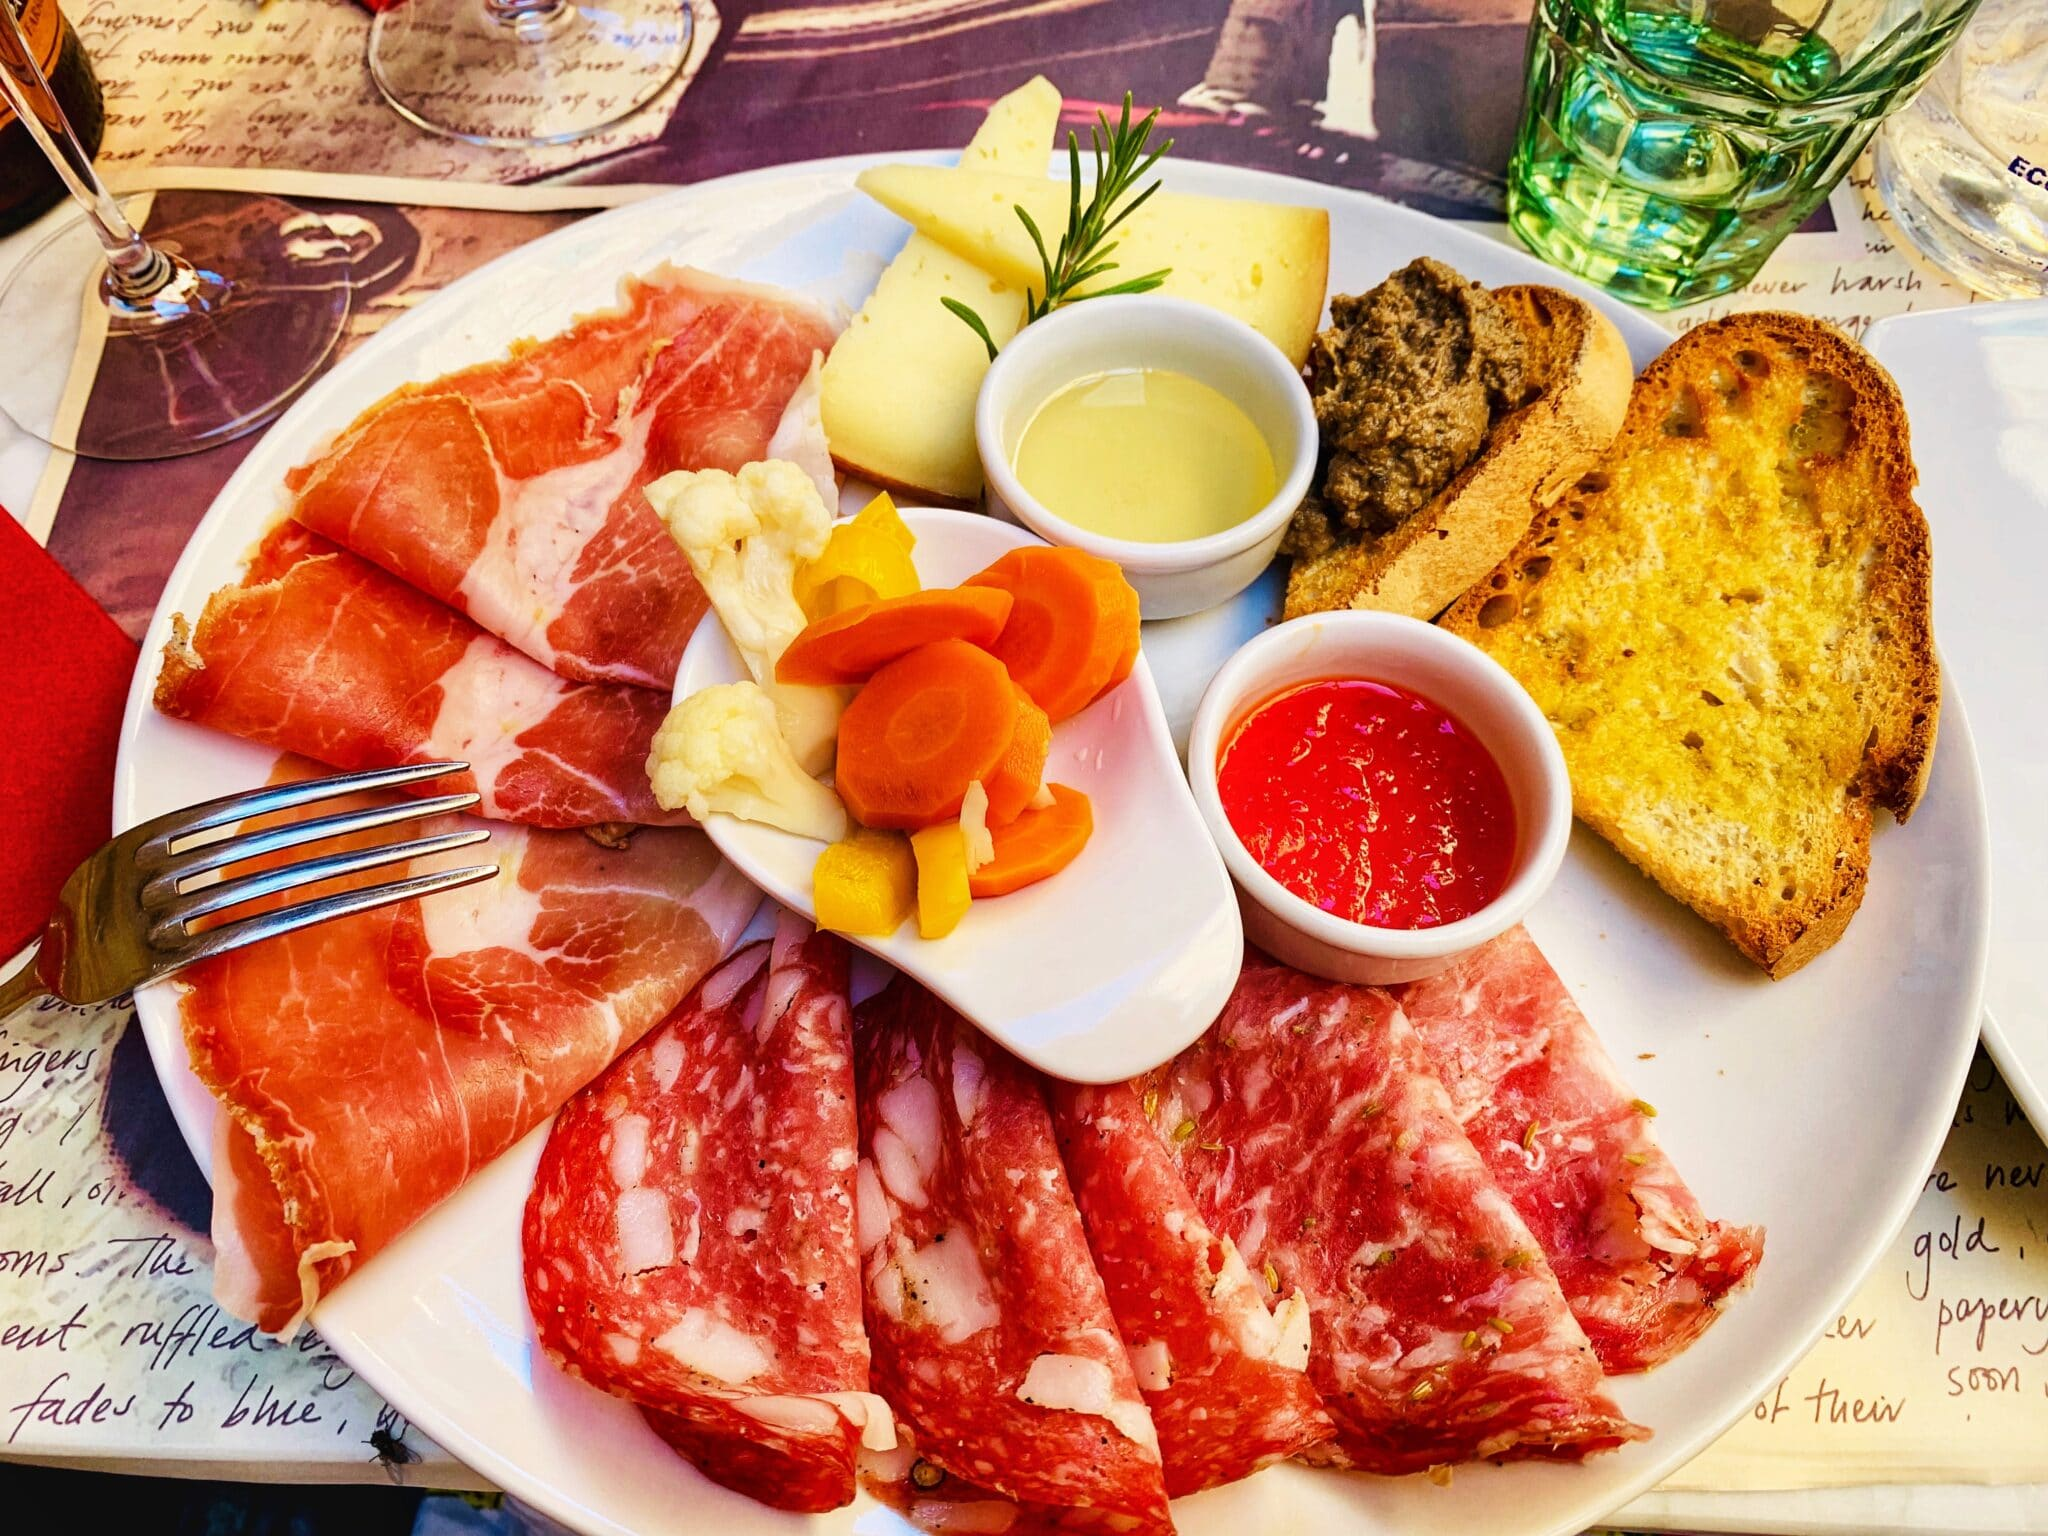 Food in Italy